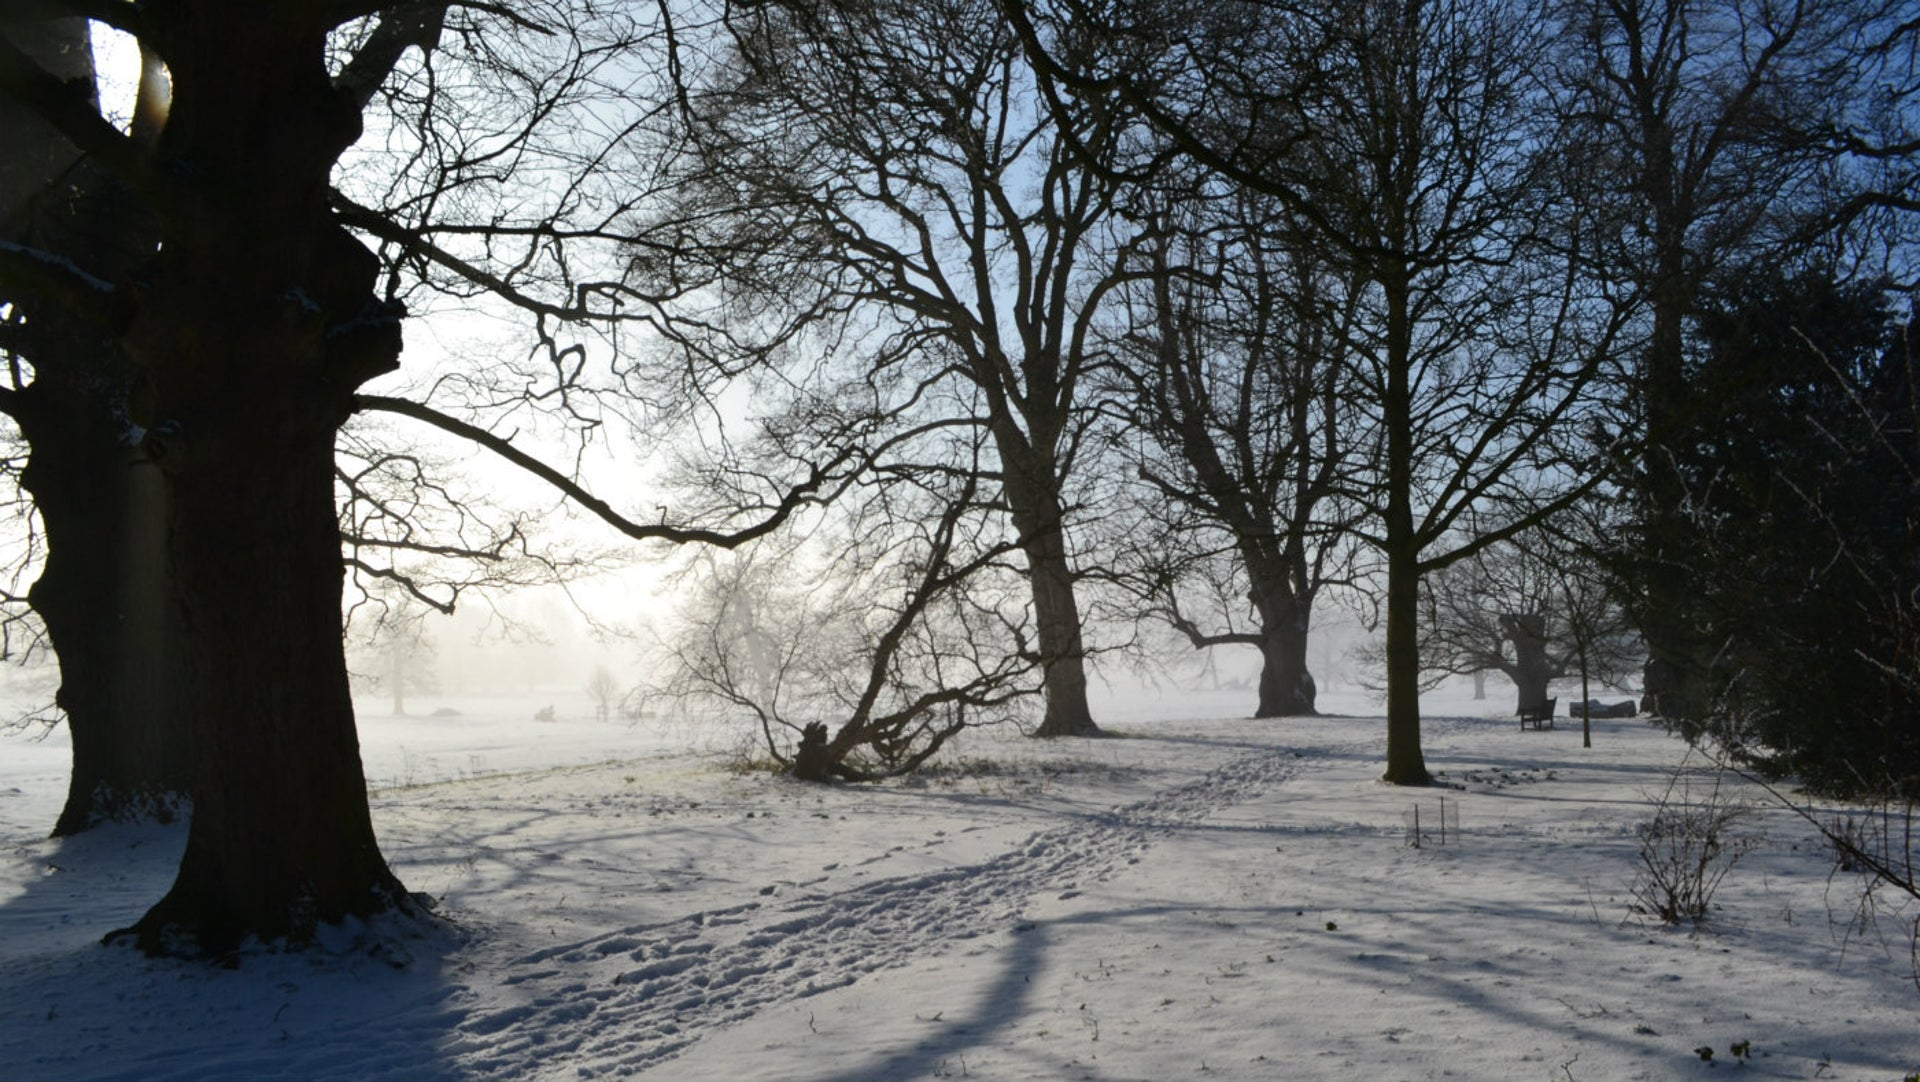 Sounds of Winter: Whispering Spaces